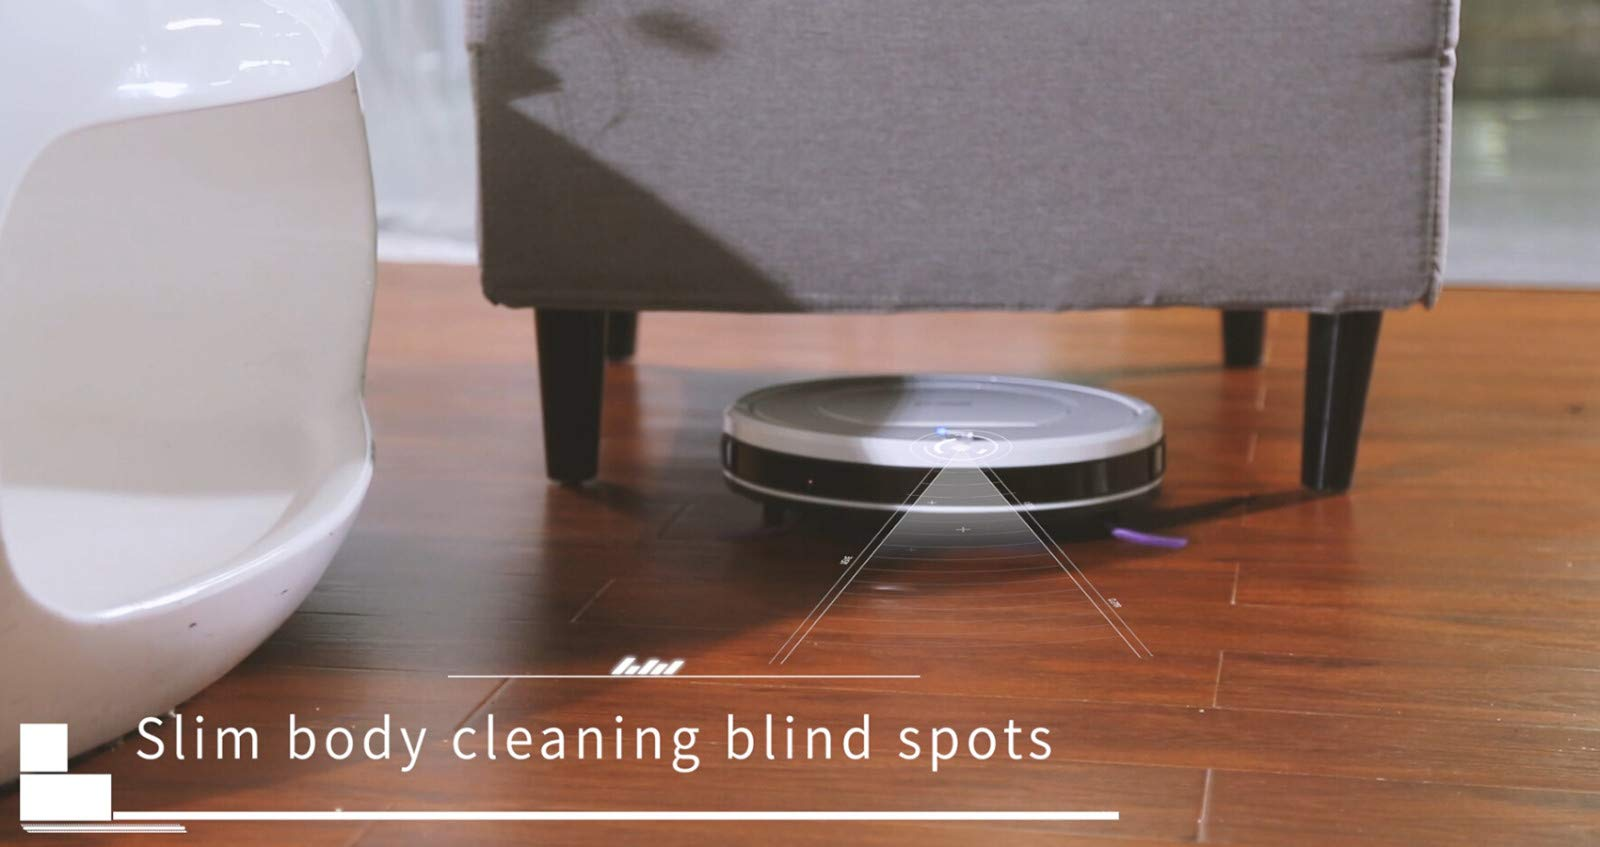 Glumes Smart Robotic Vacuum, Pet Hair Care, Powerful Suction Tangle-free, Super Quiet, Slim Design, Auto Charge, Daily Planning, Good For Hard Floor and Low Pile Carpet Ideal Gift BF Sales (Ship from US!) (white) by Glumes (Image #8)